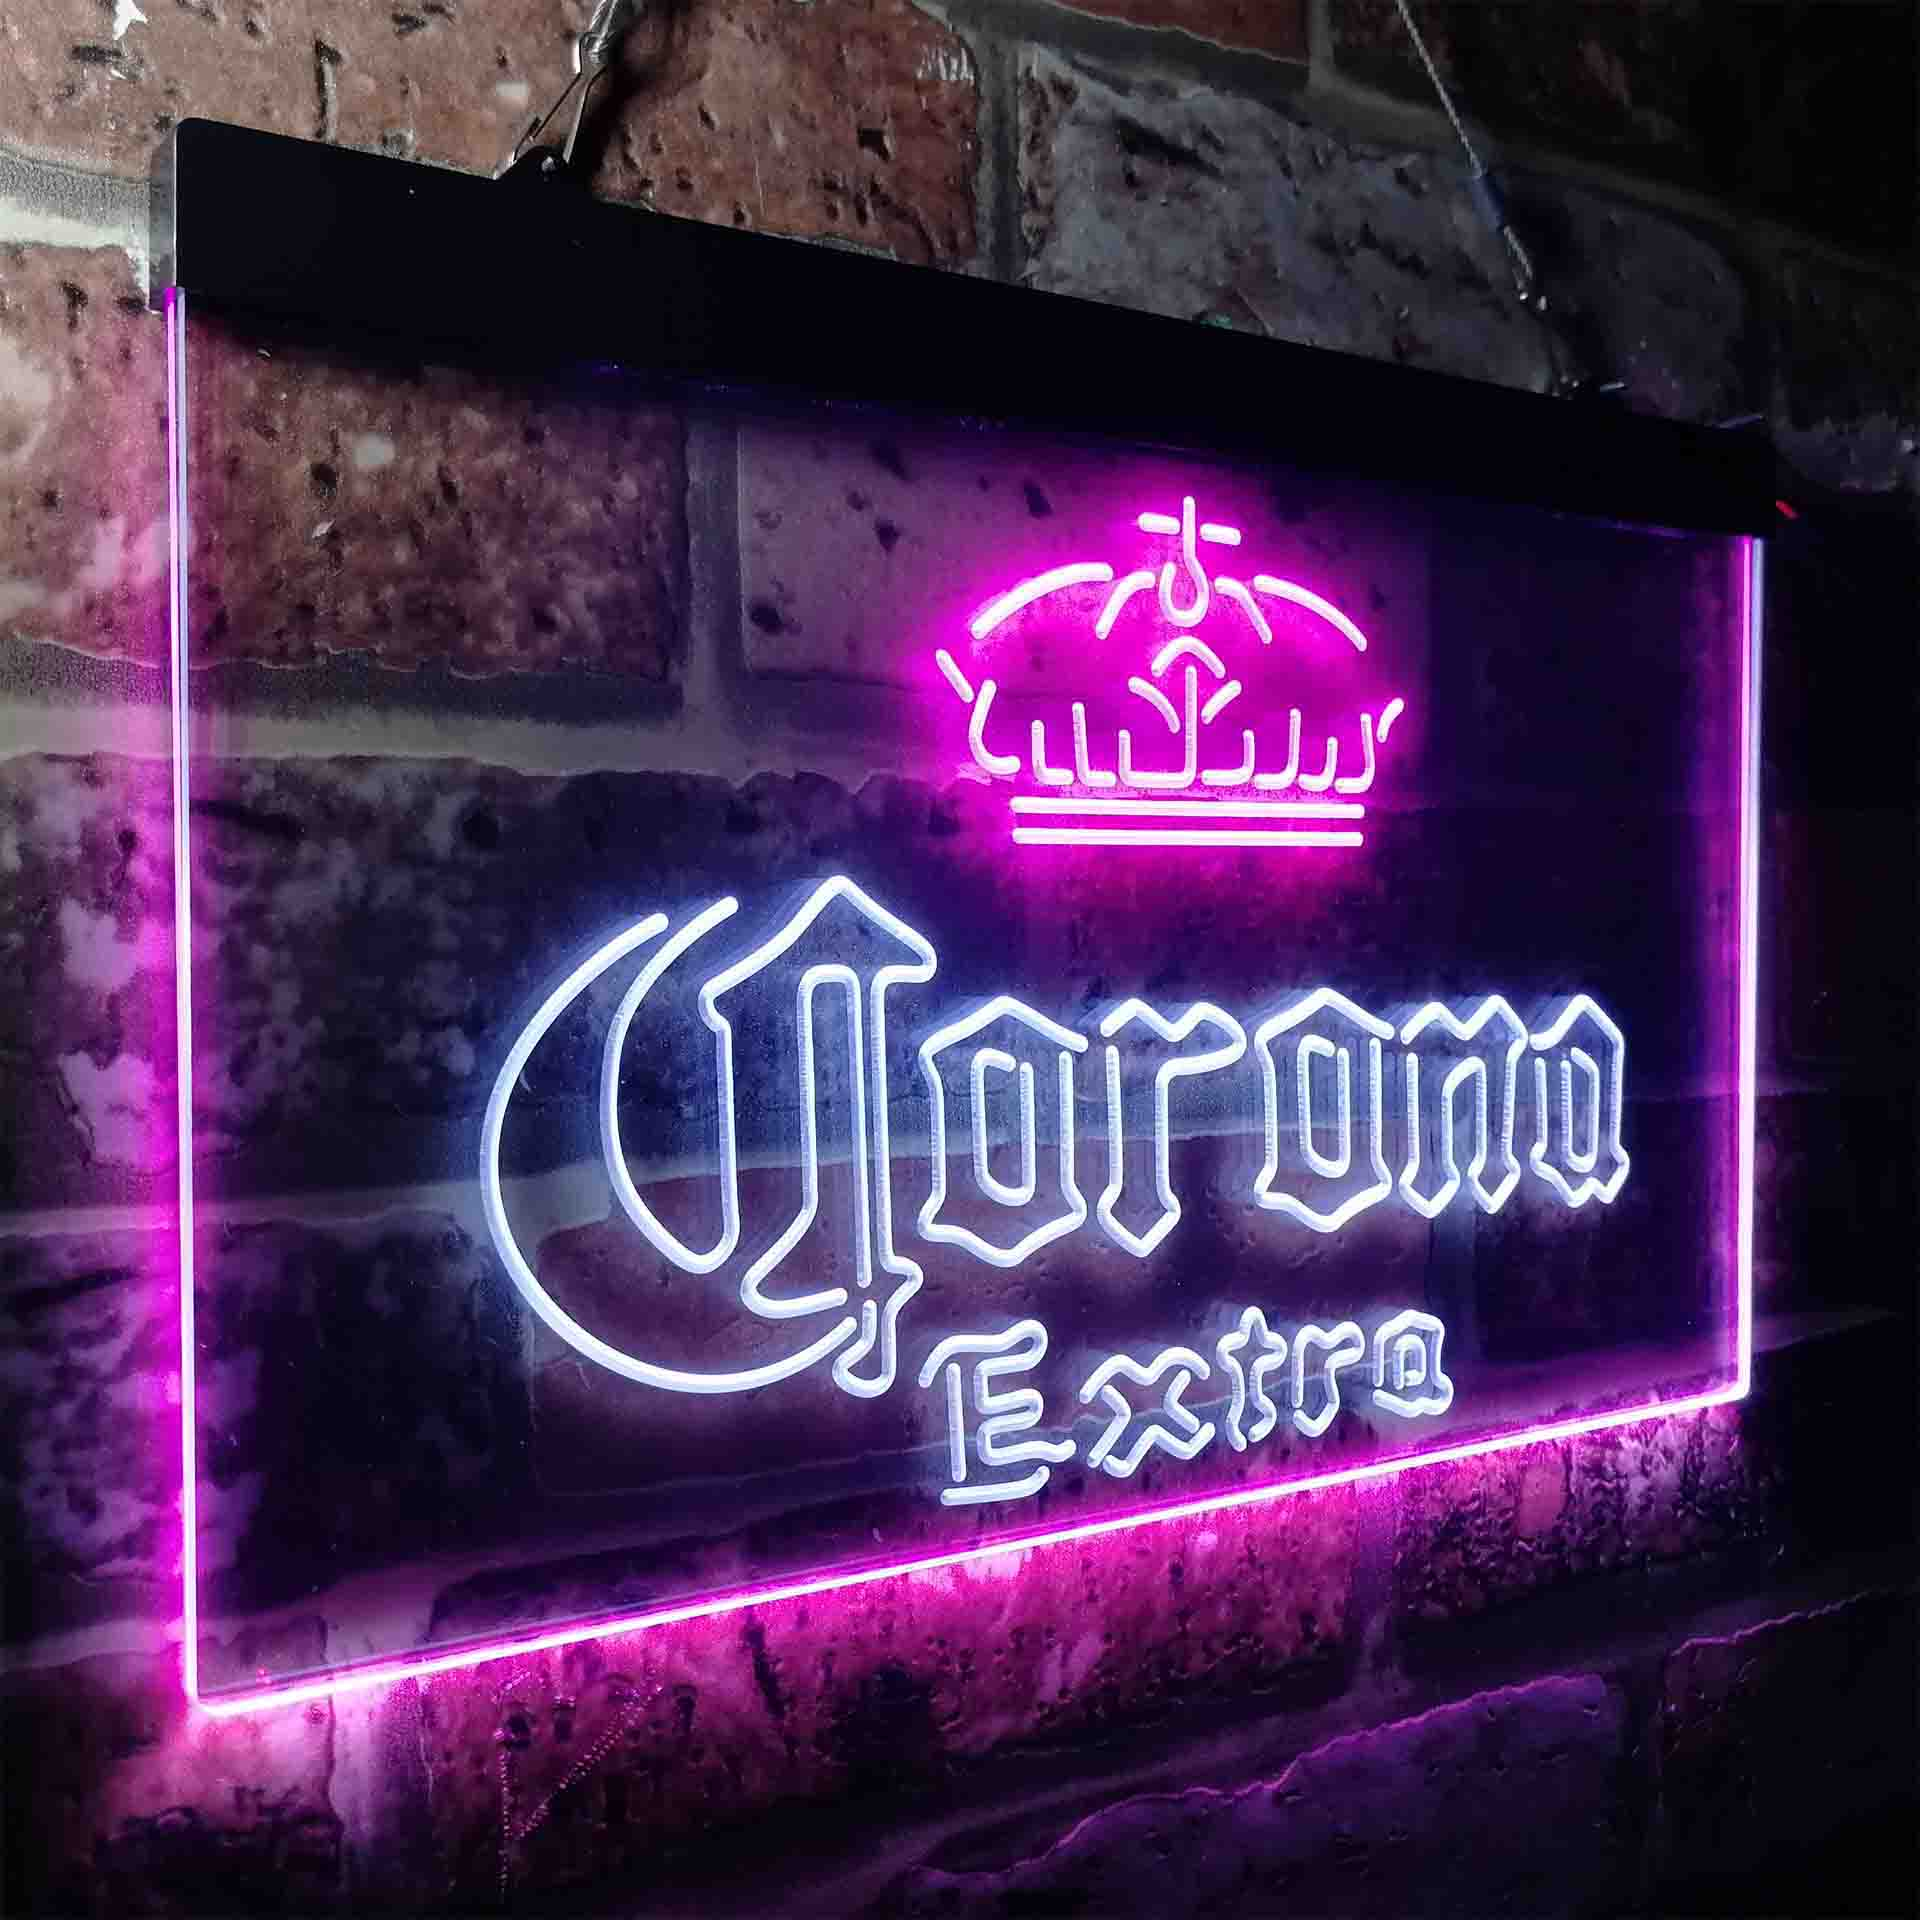 Corona Crown Extra Traditional Neon-Like LED Sign